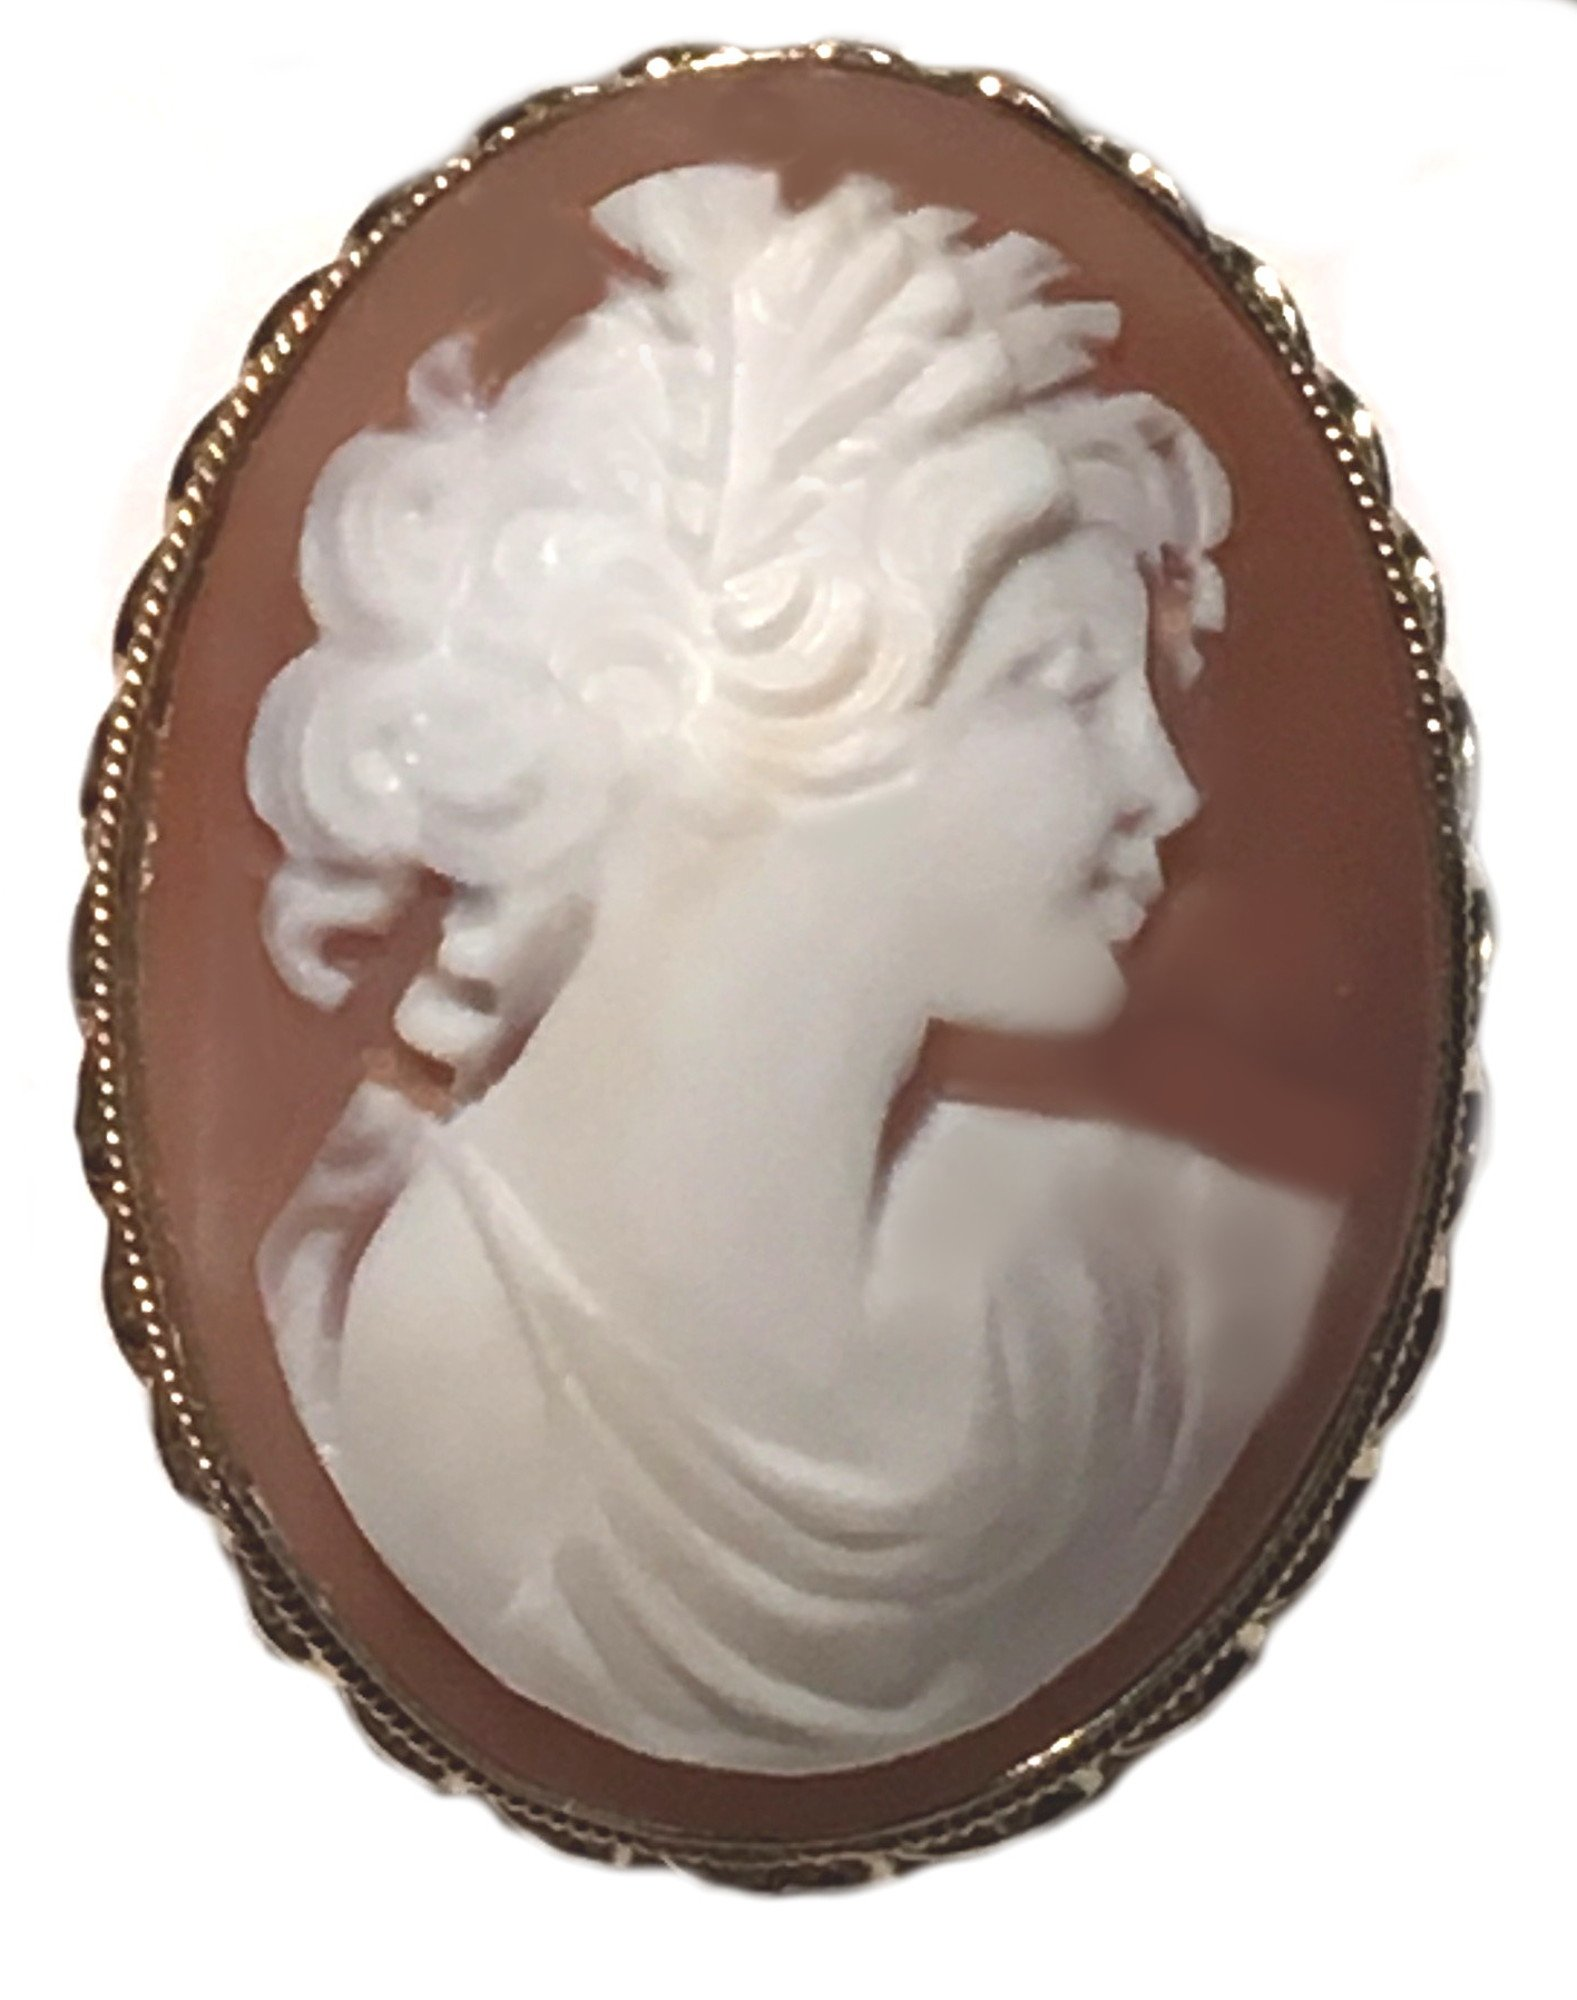 Cameo Broach Pendant Autumn Love Master Carved Sardonyx Shell Sterling Silver, 18k Yellow Gold Overlay, Italian One of a Kind